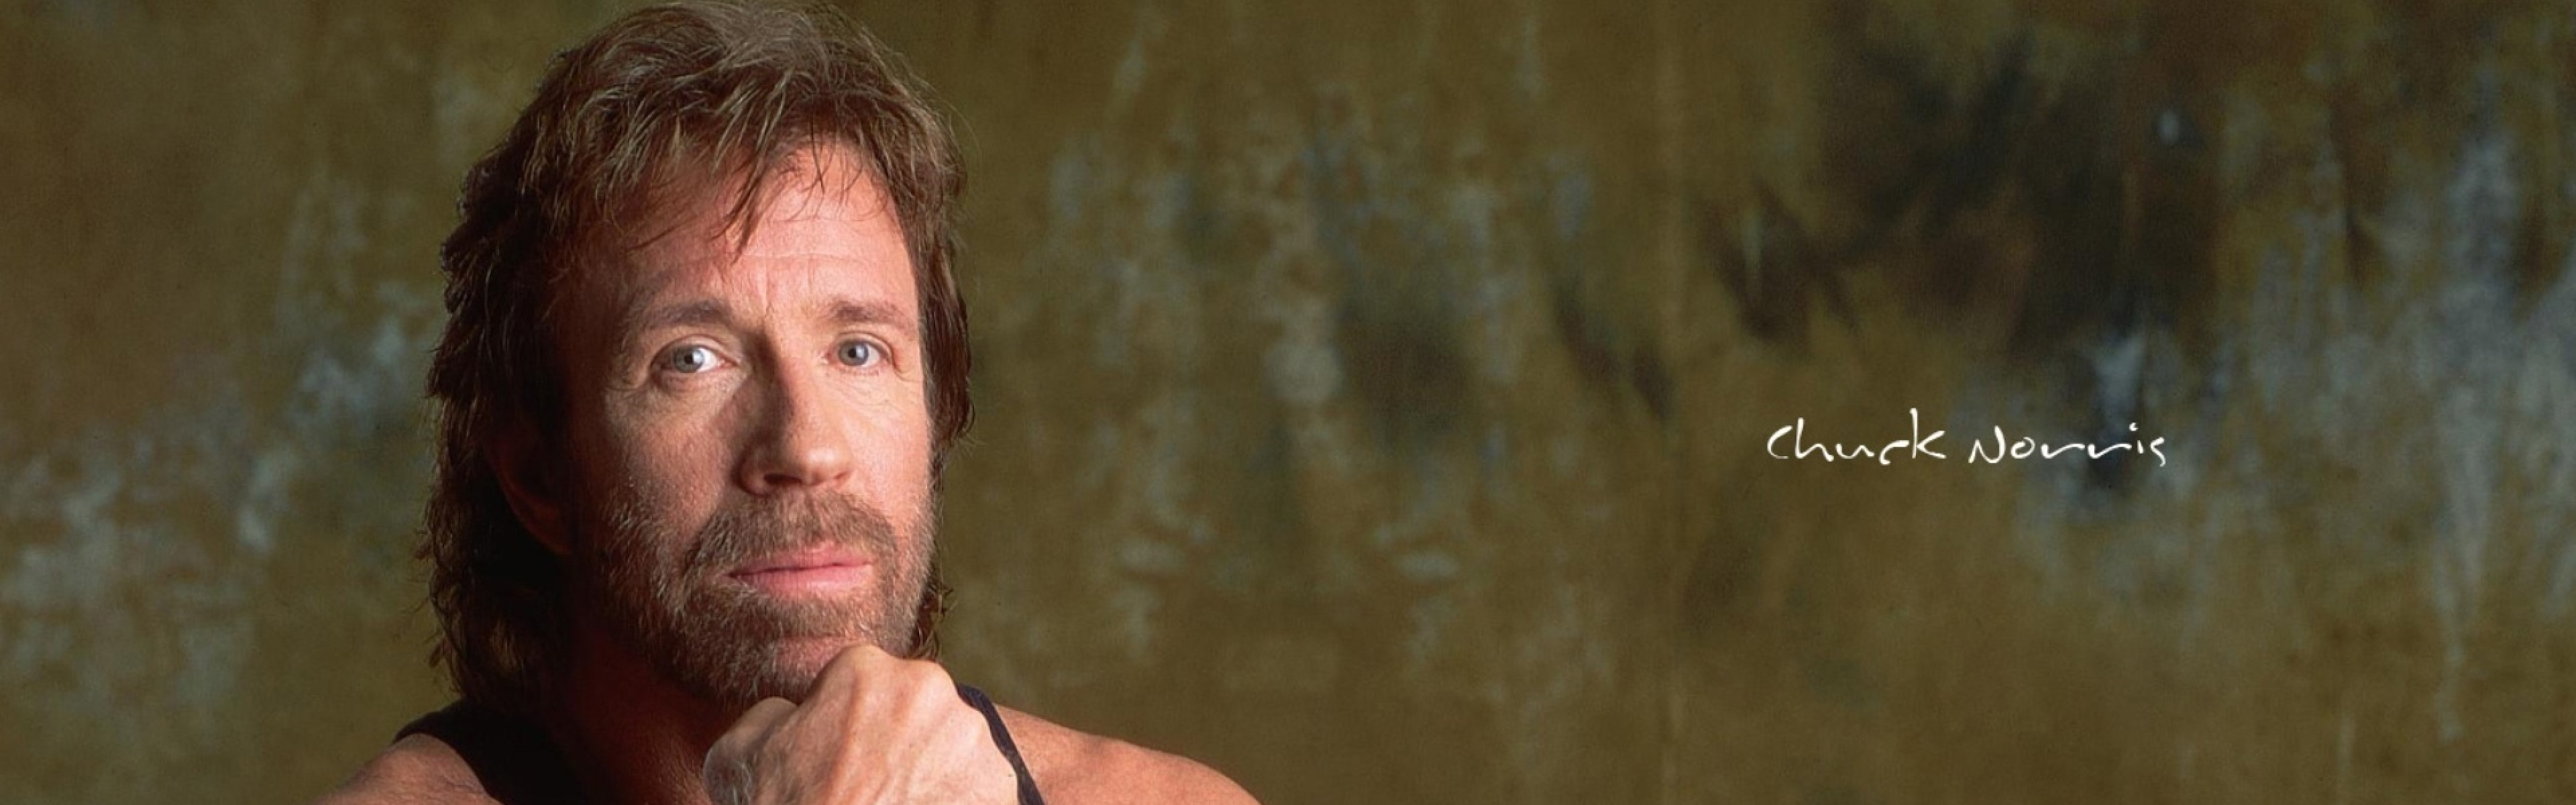 3840x1200  Wallpaper chuck norris, man, actor, shirt, celebrity, hollywood